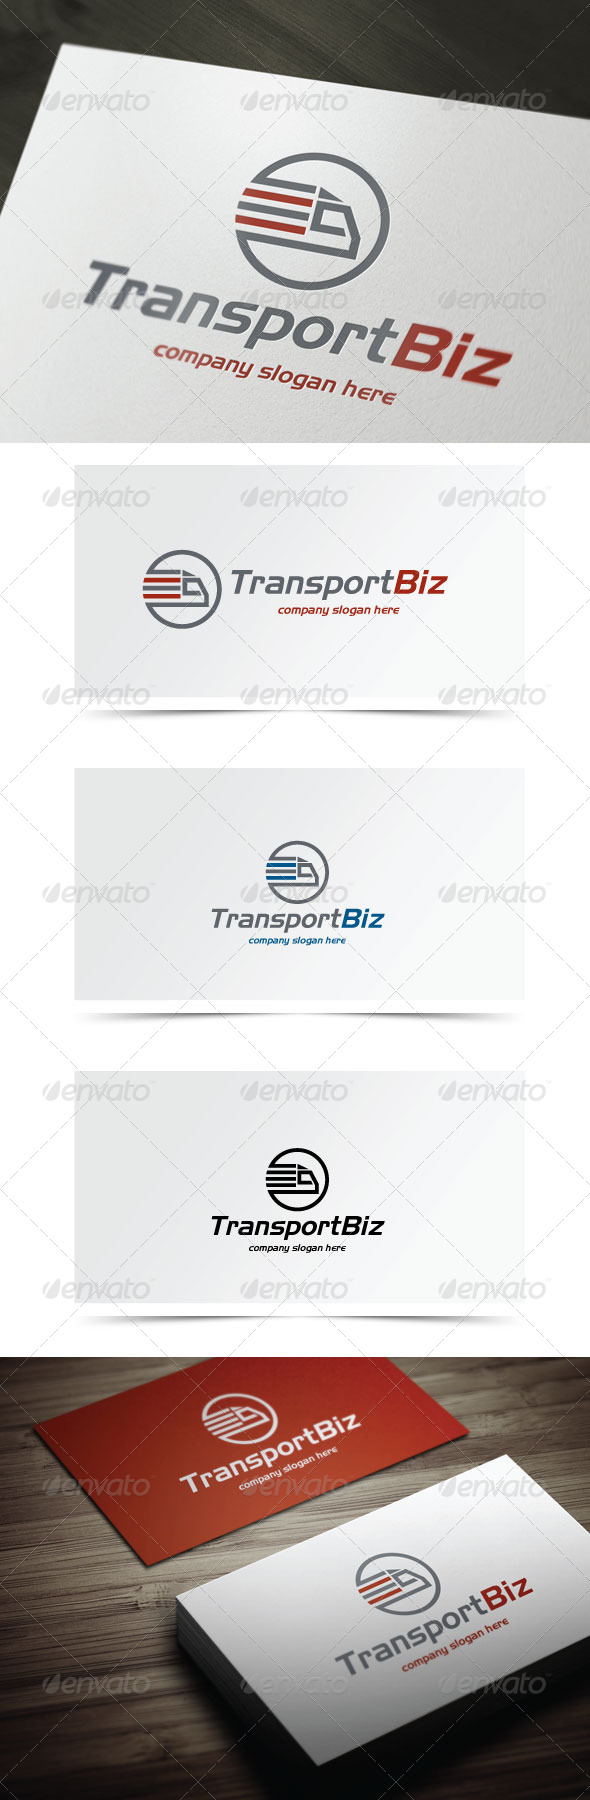 GraphicRiver Transport Biz 6123960